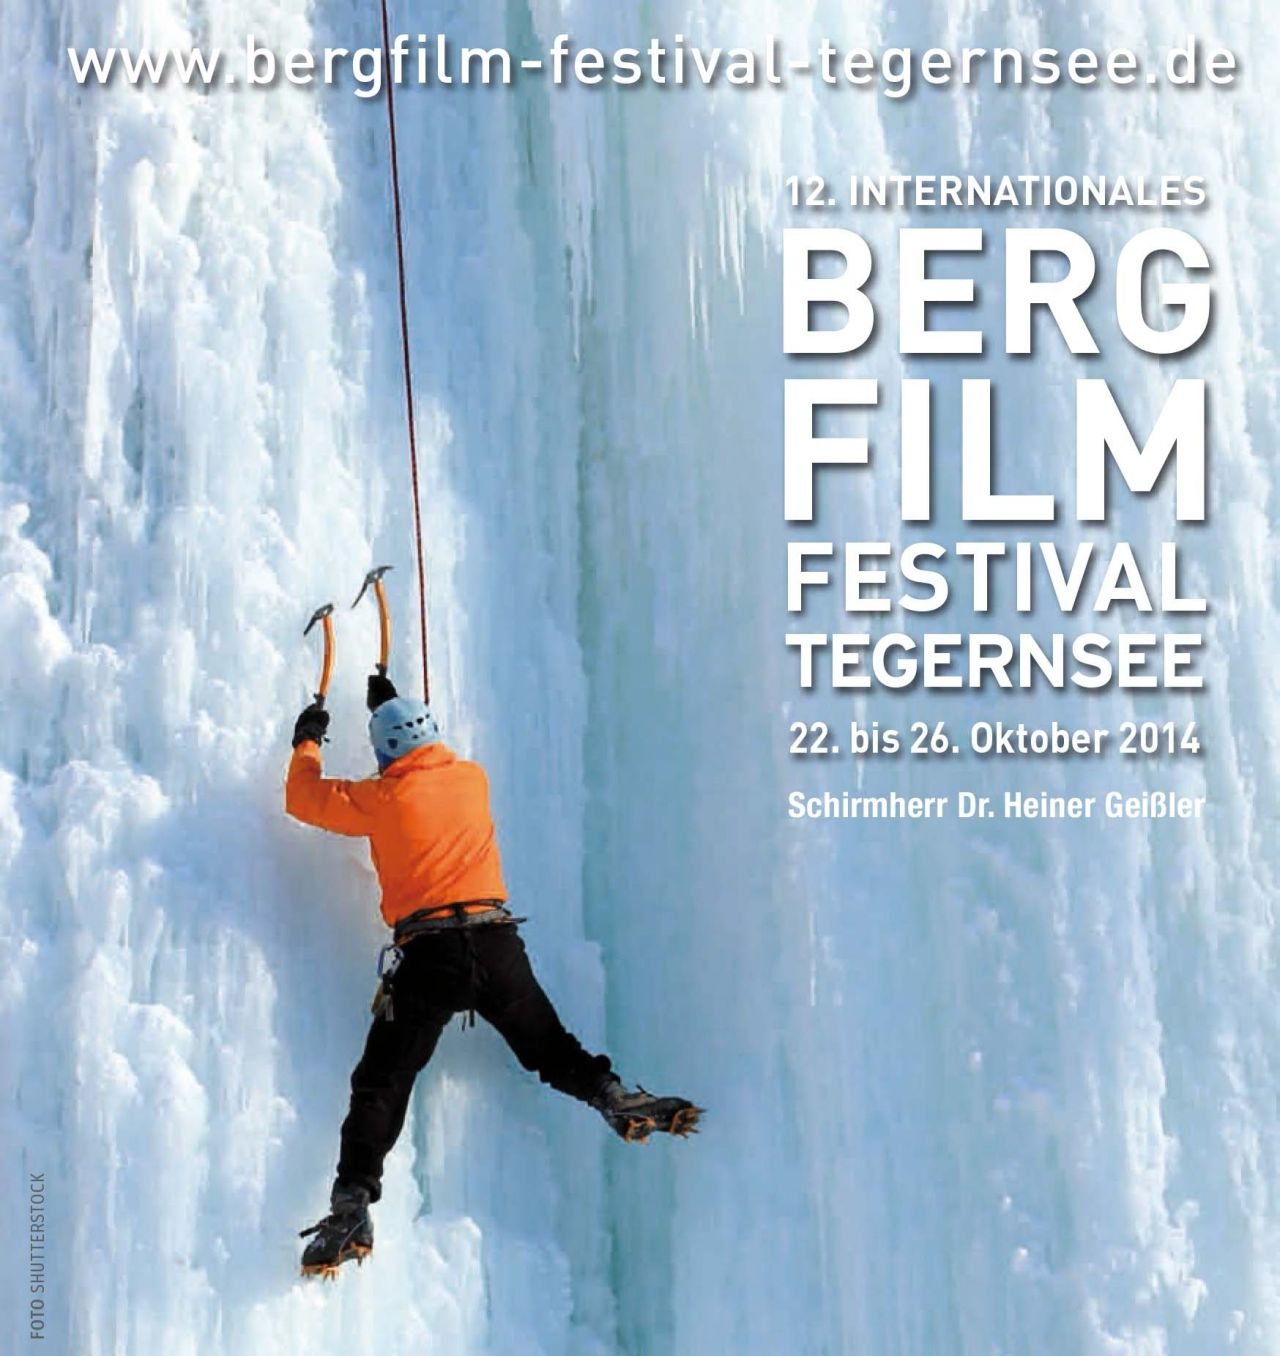 '12. Internationales Bergfilmfestival Tegernsee'